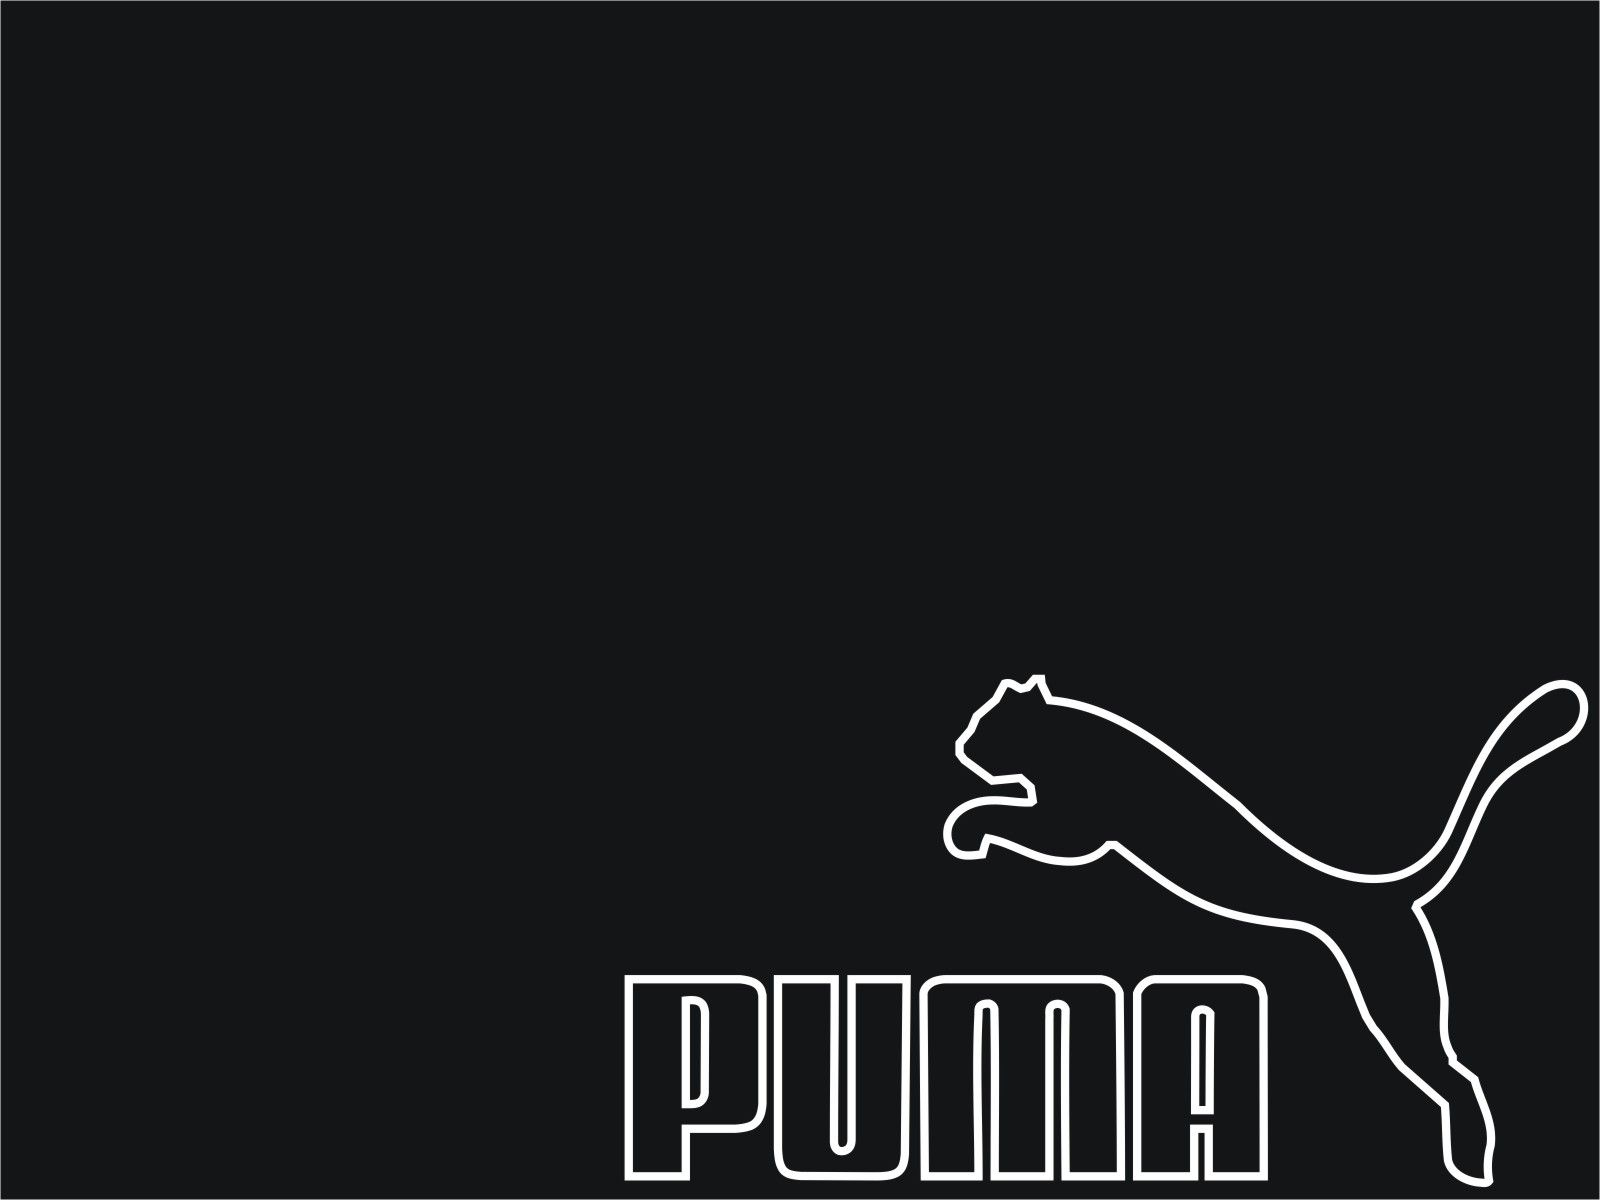 1600x1200 Gallery For: Puma Wallpapers, 1600x1200 – free only here at ...